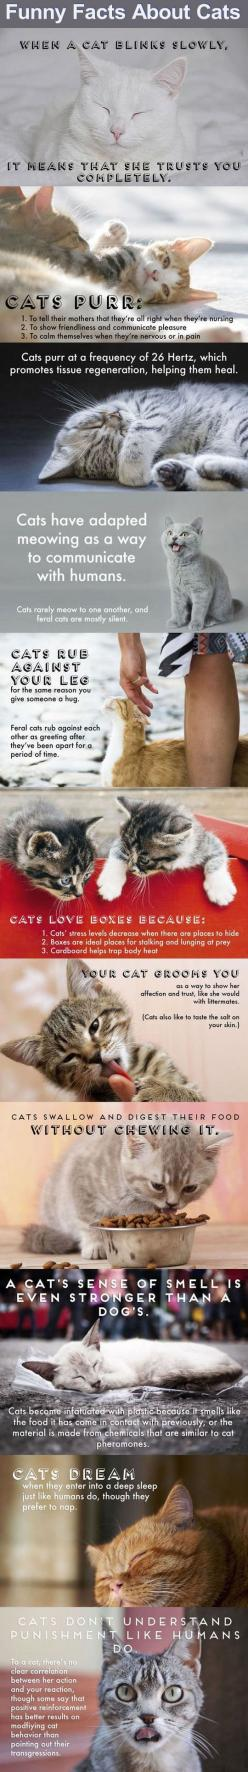 Funny Cat Facts Pictures, Photos, and Images for Facebook, Tumblr, Pinterest, and Twitter: Kitty Cats, Cats Facts, Funny Cat, Kitty Facts, Cat Love, Crazy Cat, Cat Facts, Animal